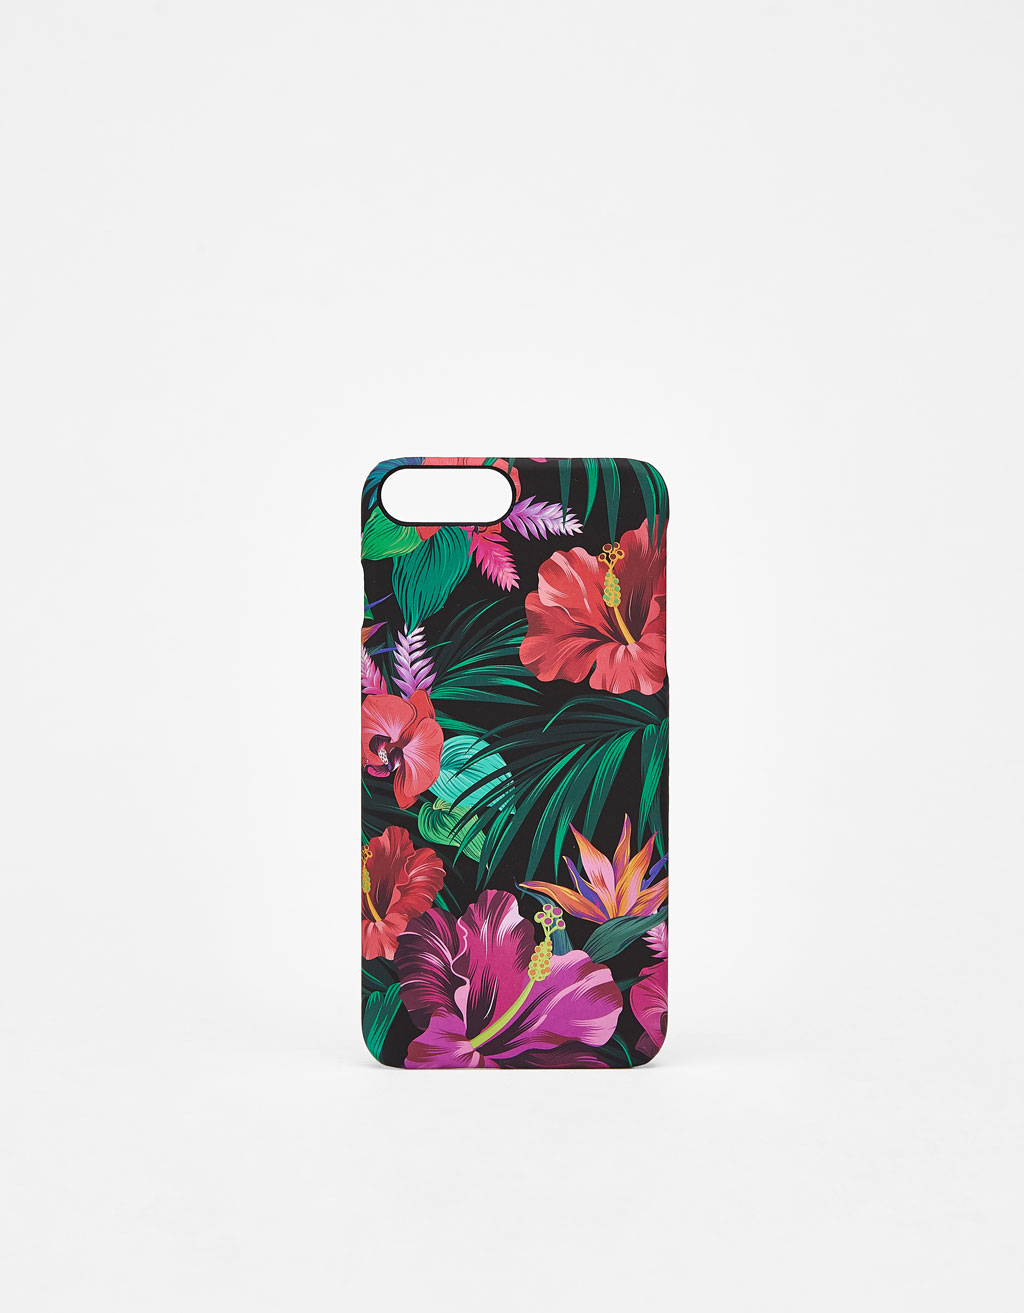 Carcasa de flores tropicales iPhone 6 plus/7 plus /8 plus